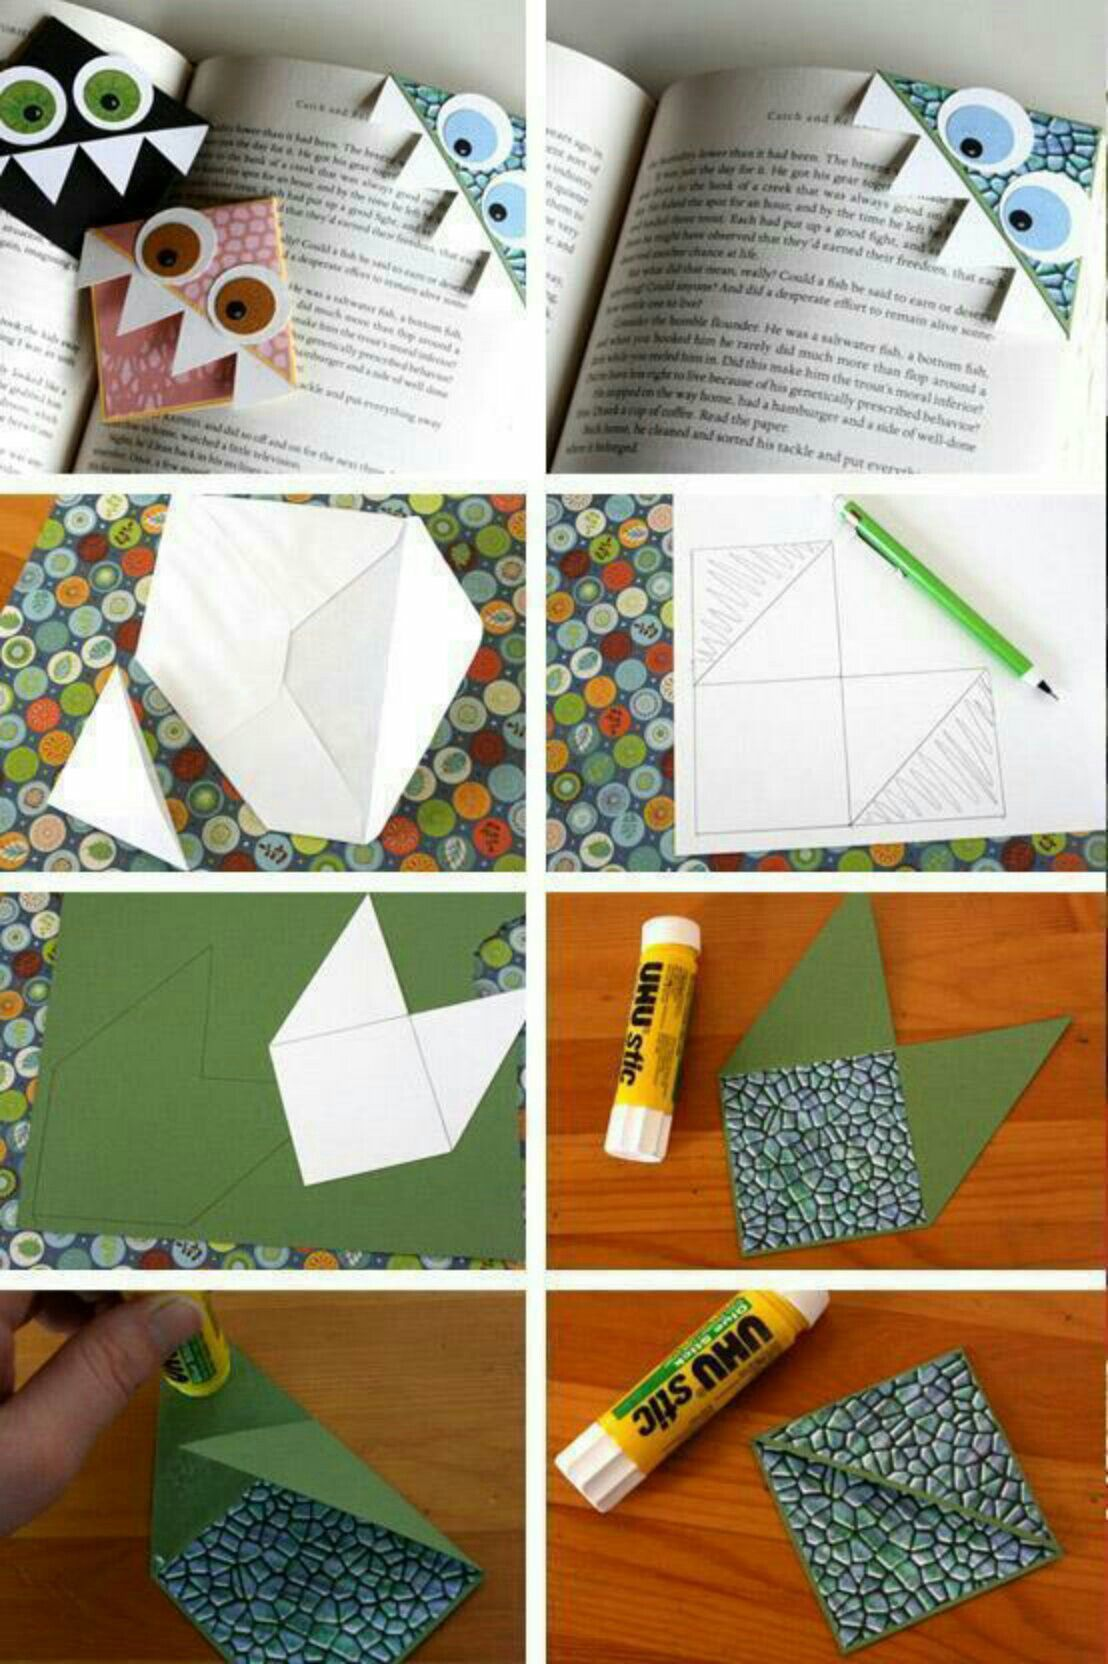 Very creative bookmarks are the one with